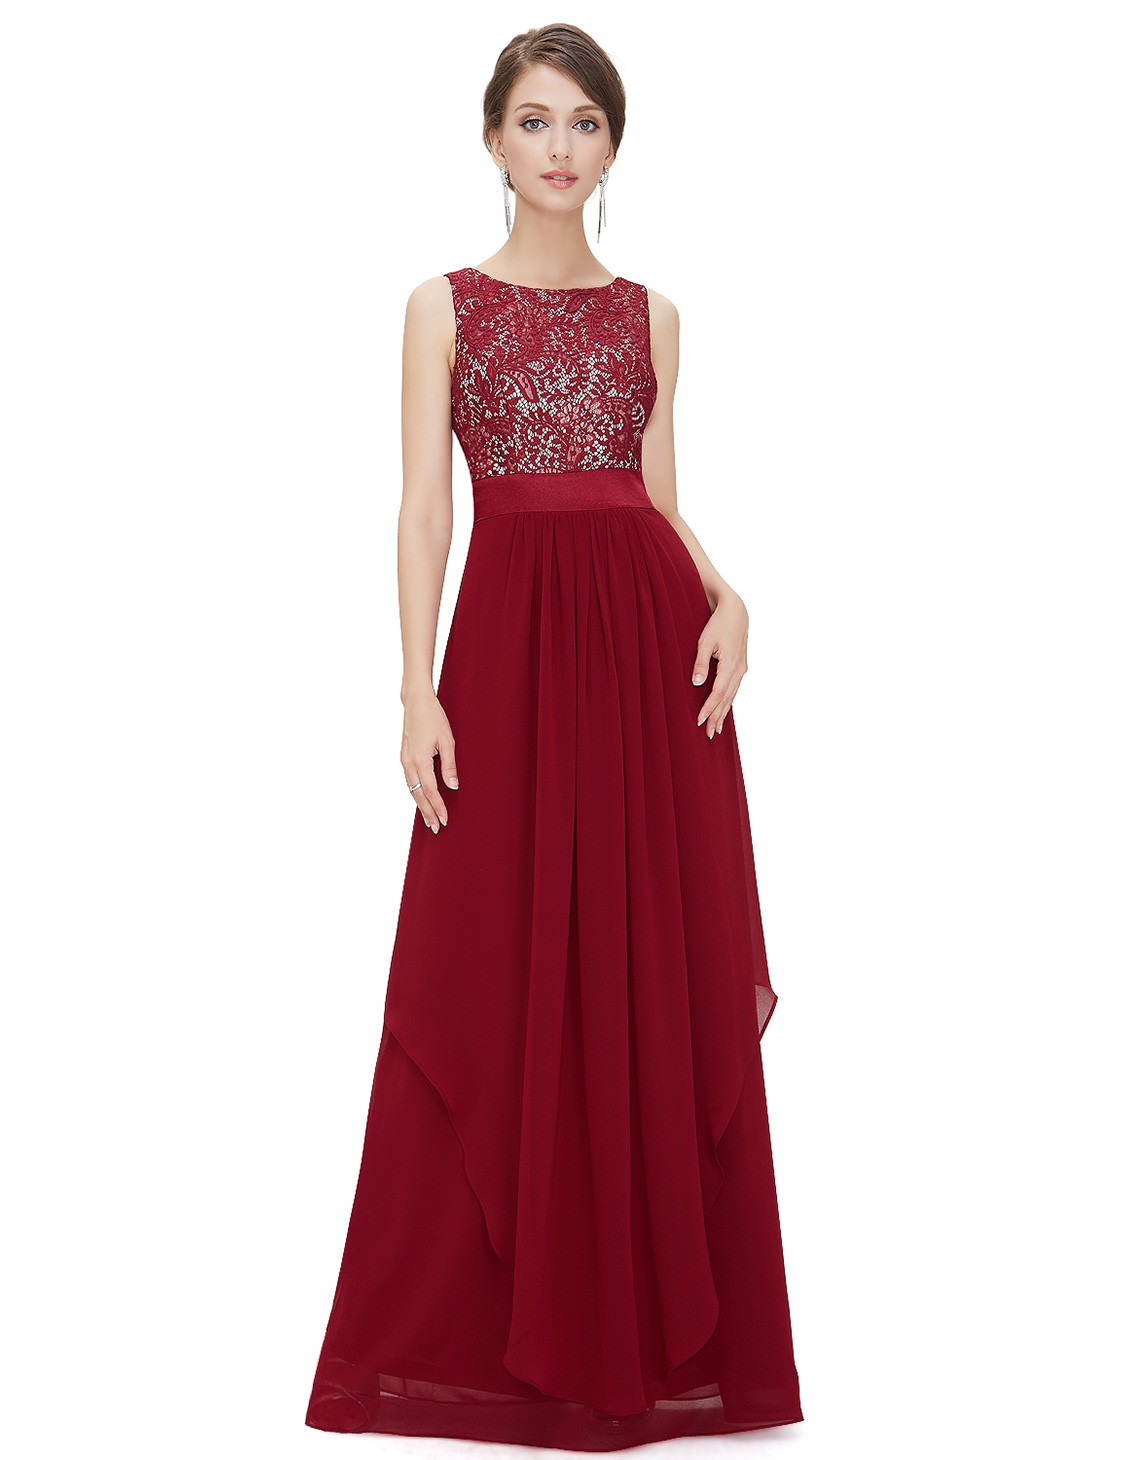 Long evening dresses: for the beauty of the world